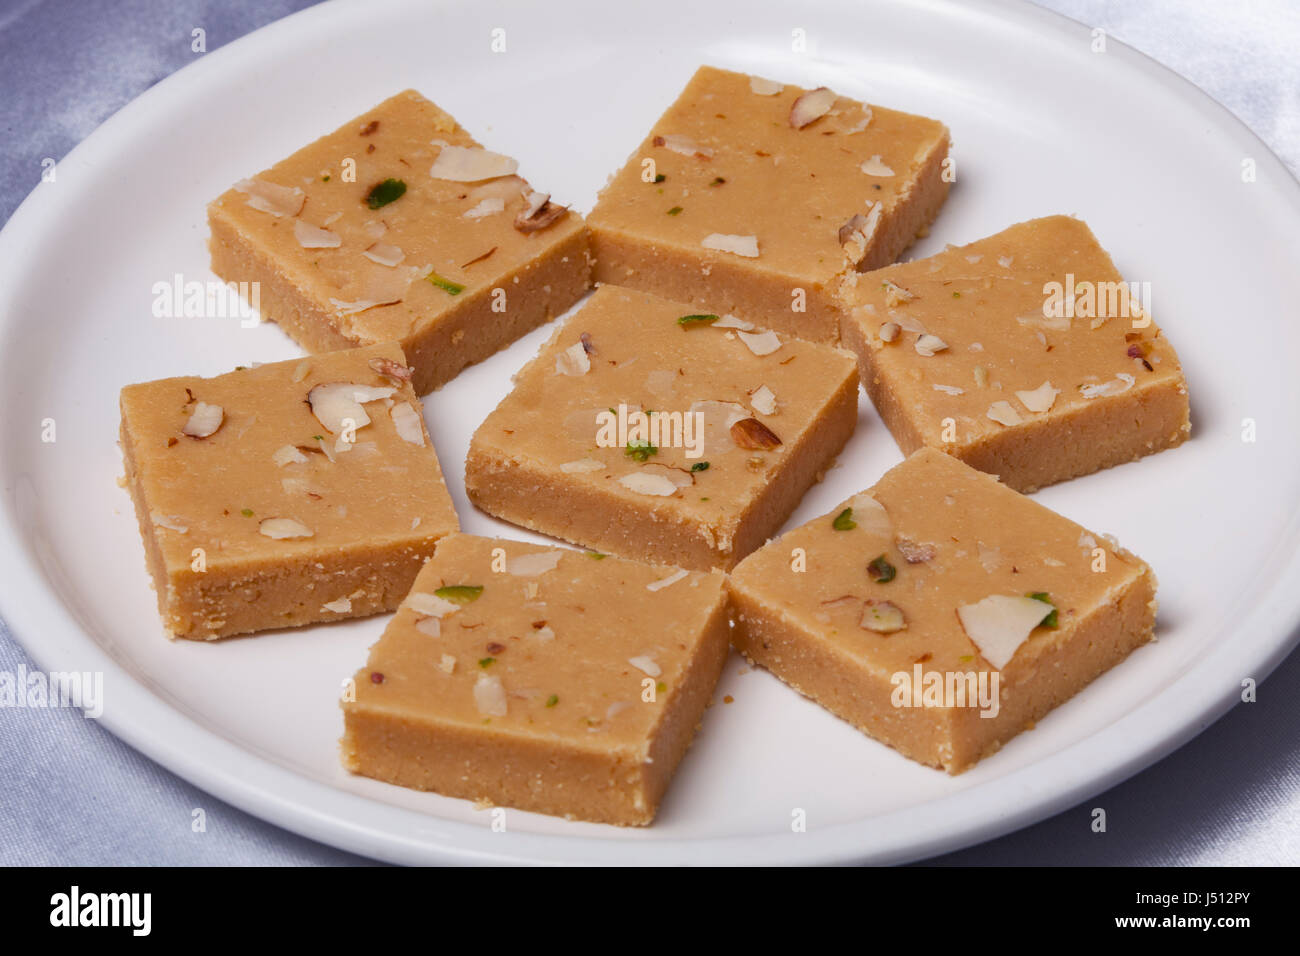 Indian's favourite festival sweets. Burfi. Especially during Diwali festival and Christmas Time. - Stock Image